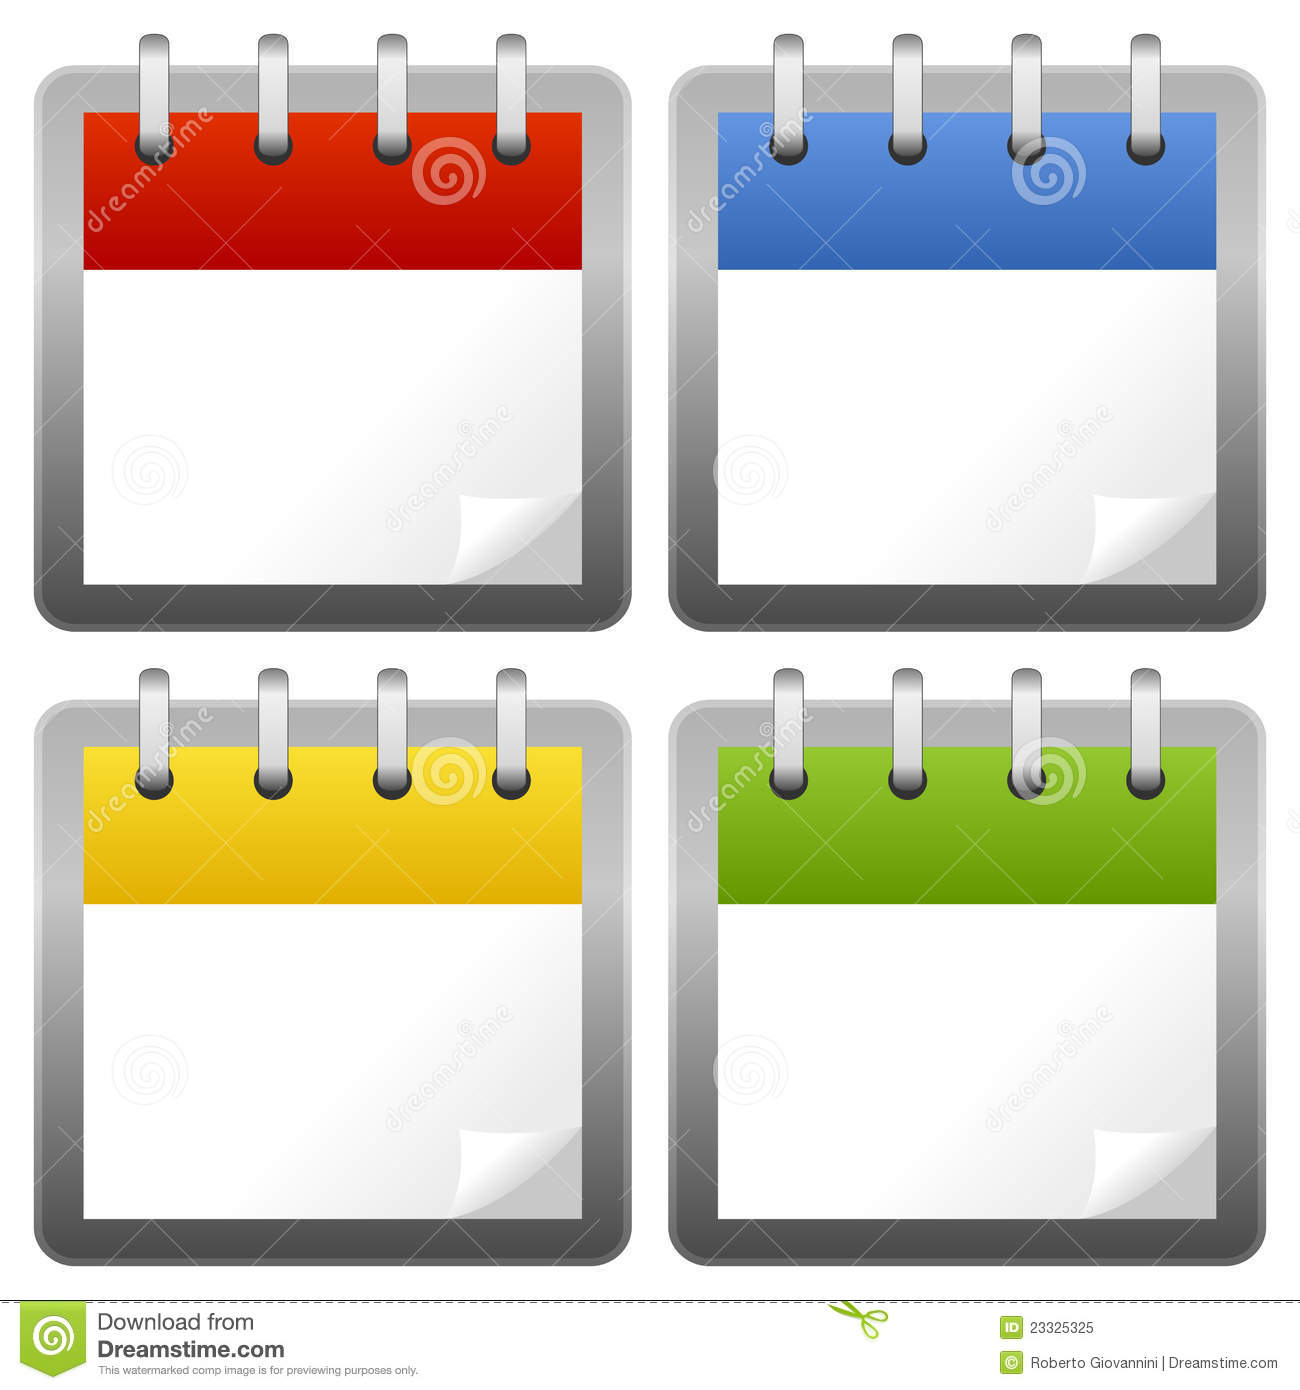 Blank Calendar Day Icon : Blank calendar icons set stock vector image of drawing